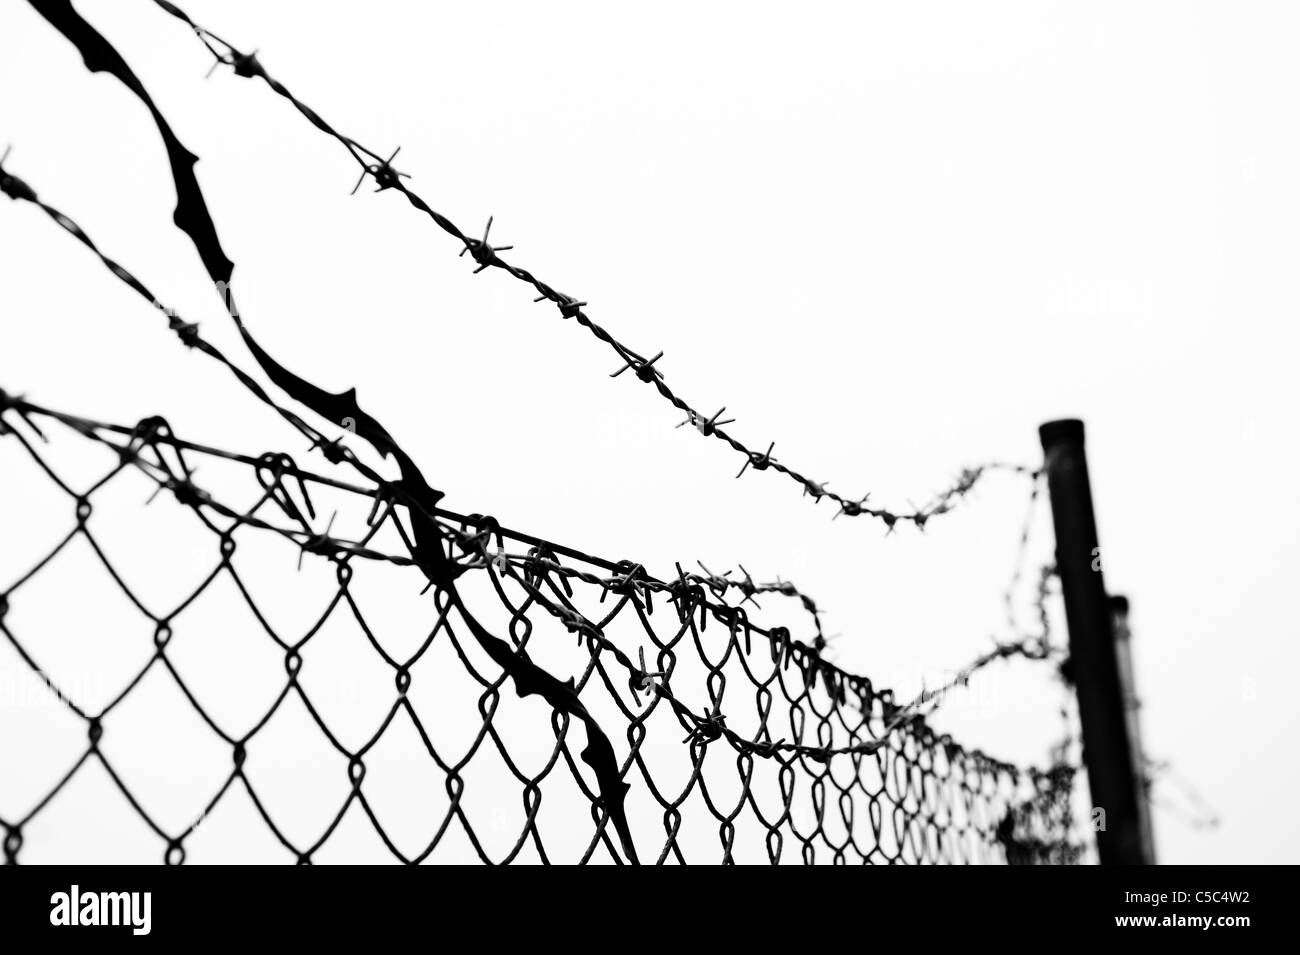 Close-up of barbed wire fence against clear sky - Stock Image